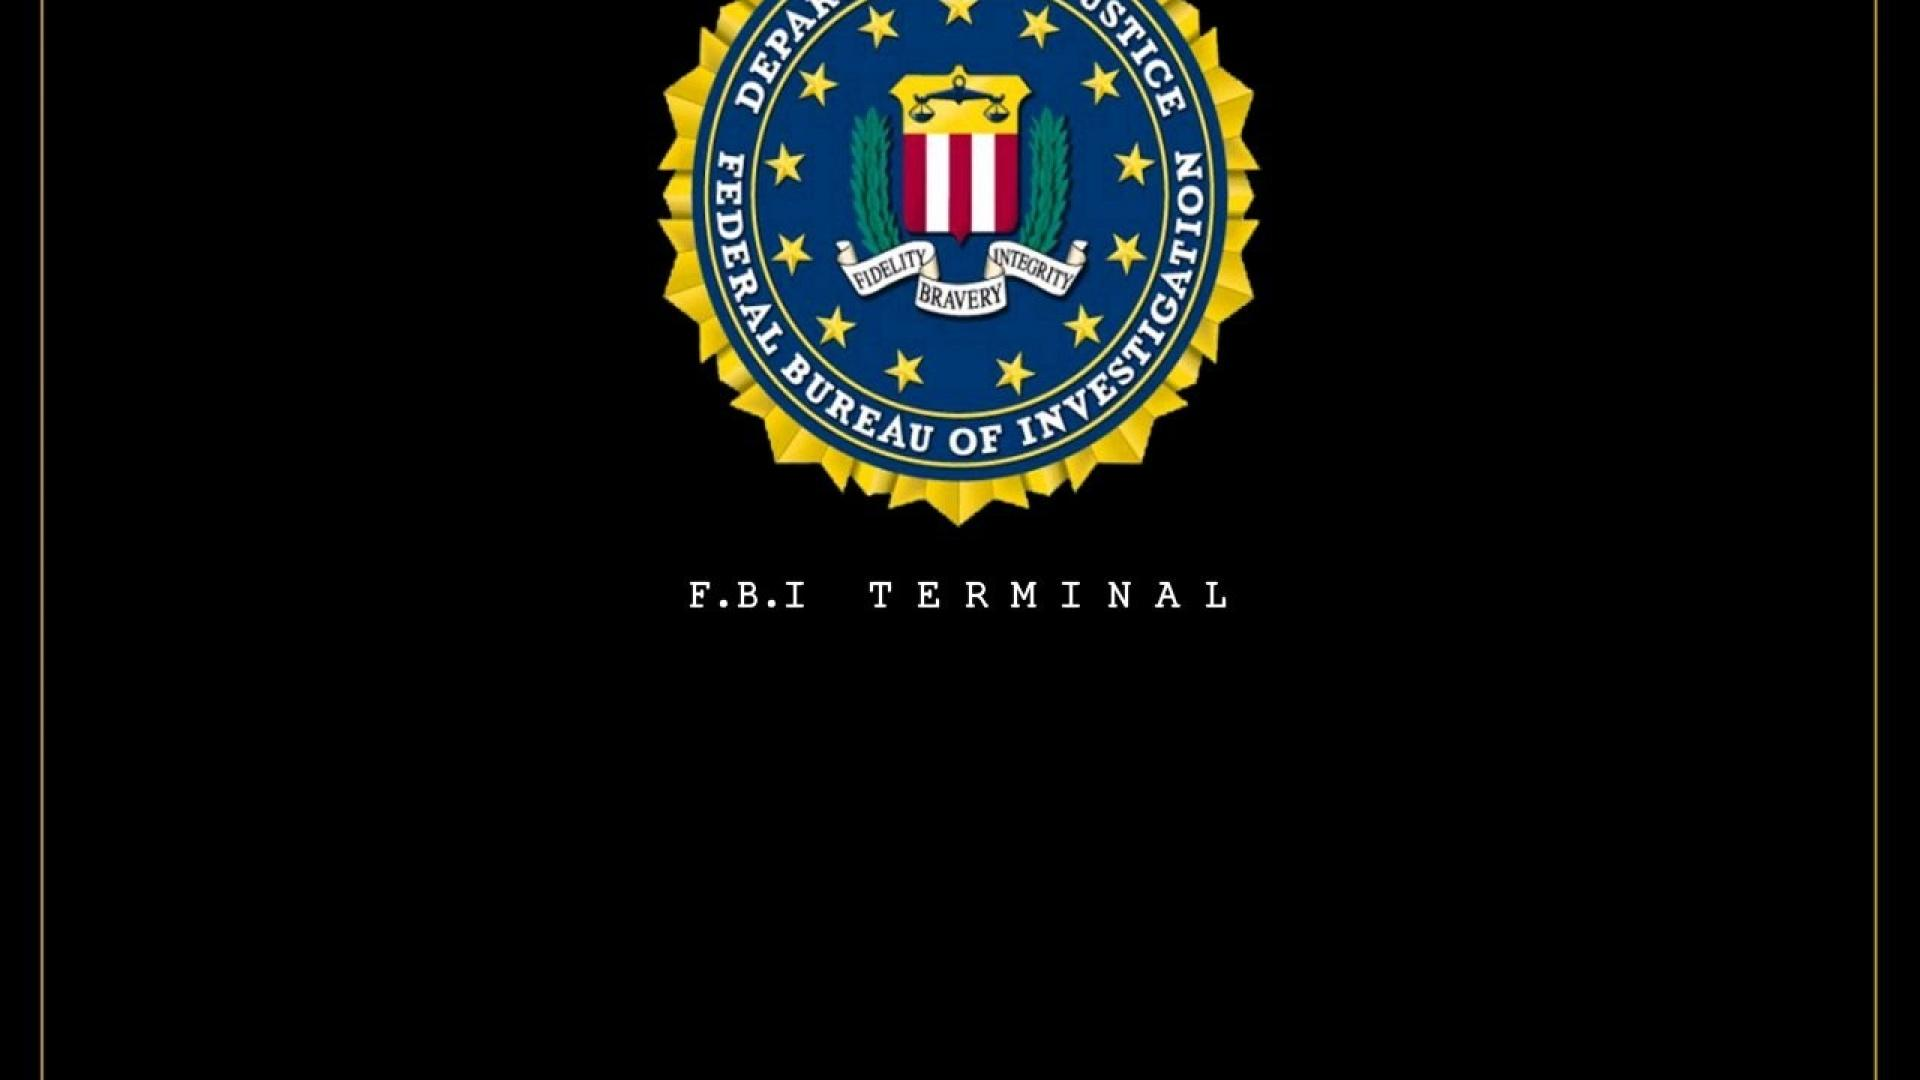 wallpapers fbi wall - photo #20